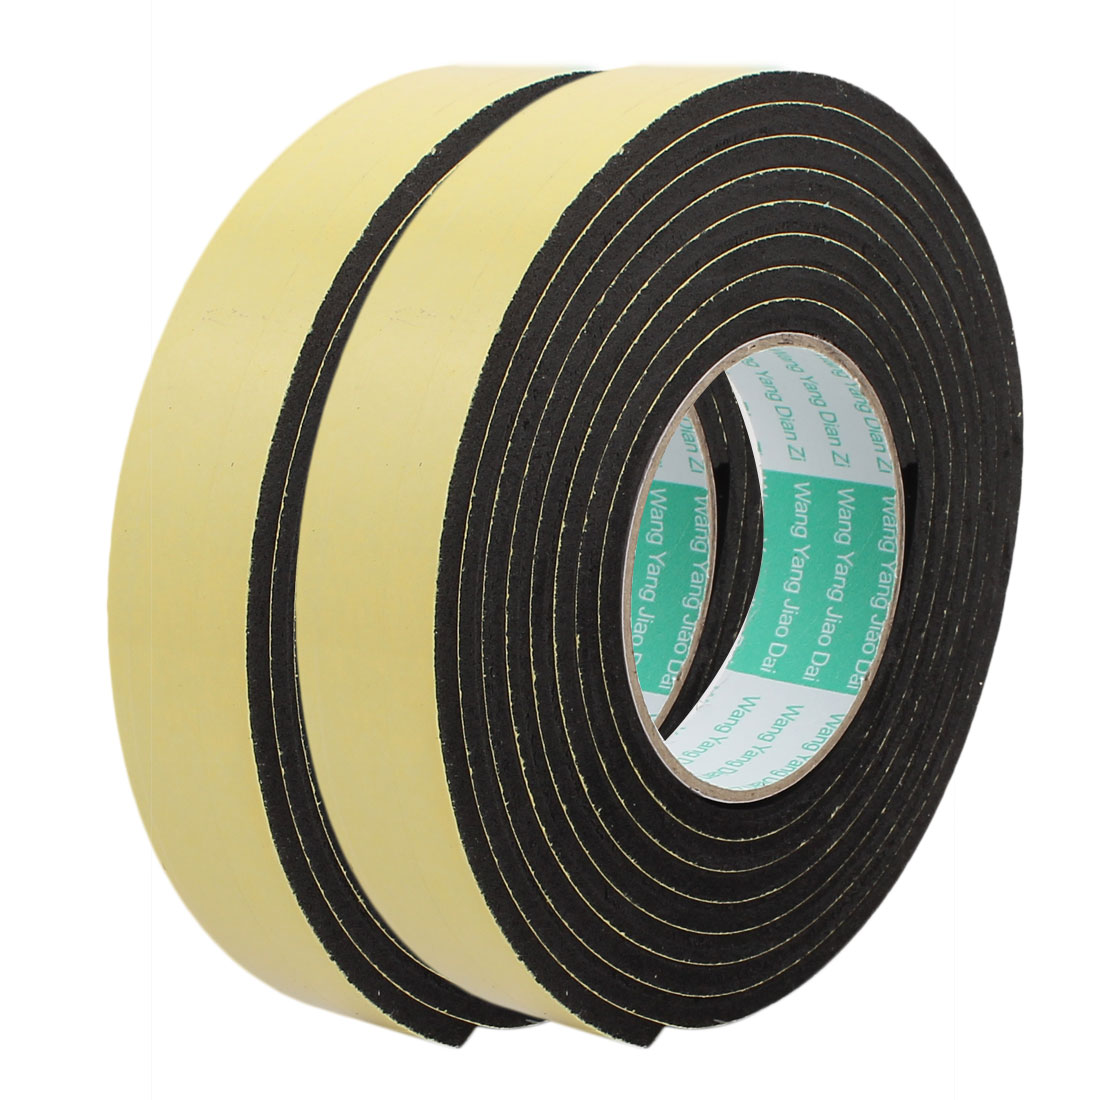 2pcs 3Meter 30mm x 5mm Single-side Adhesive Shockproof Sponge Foam Tape Yellow